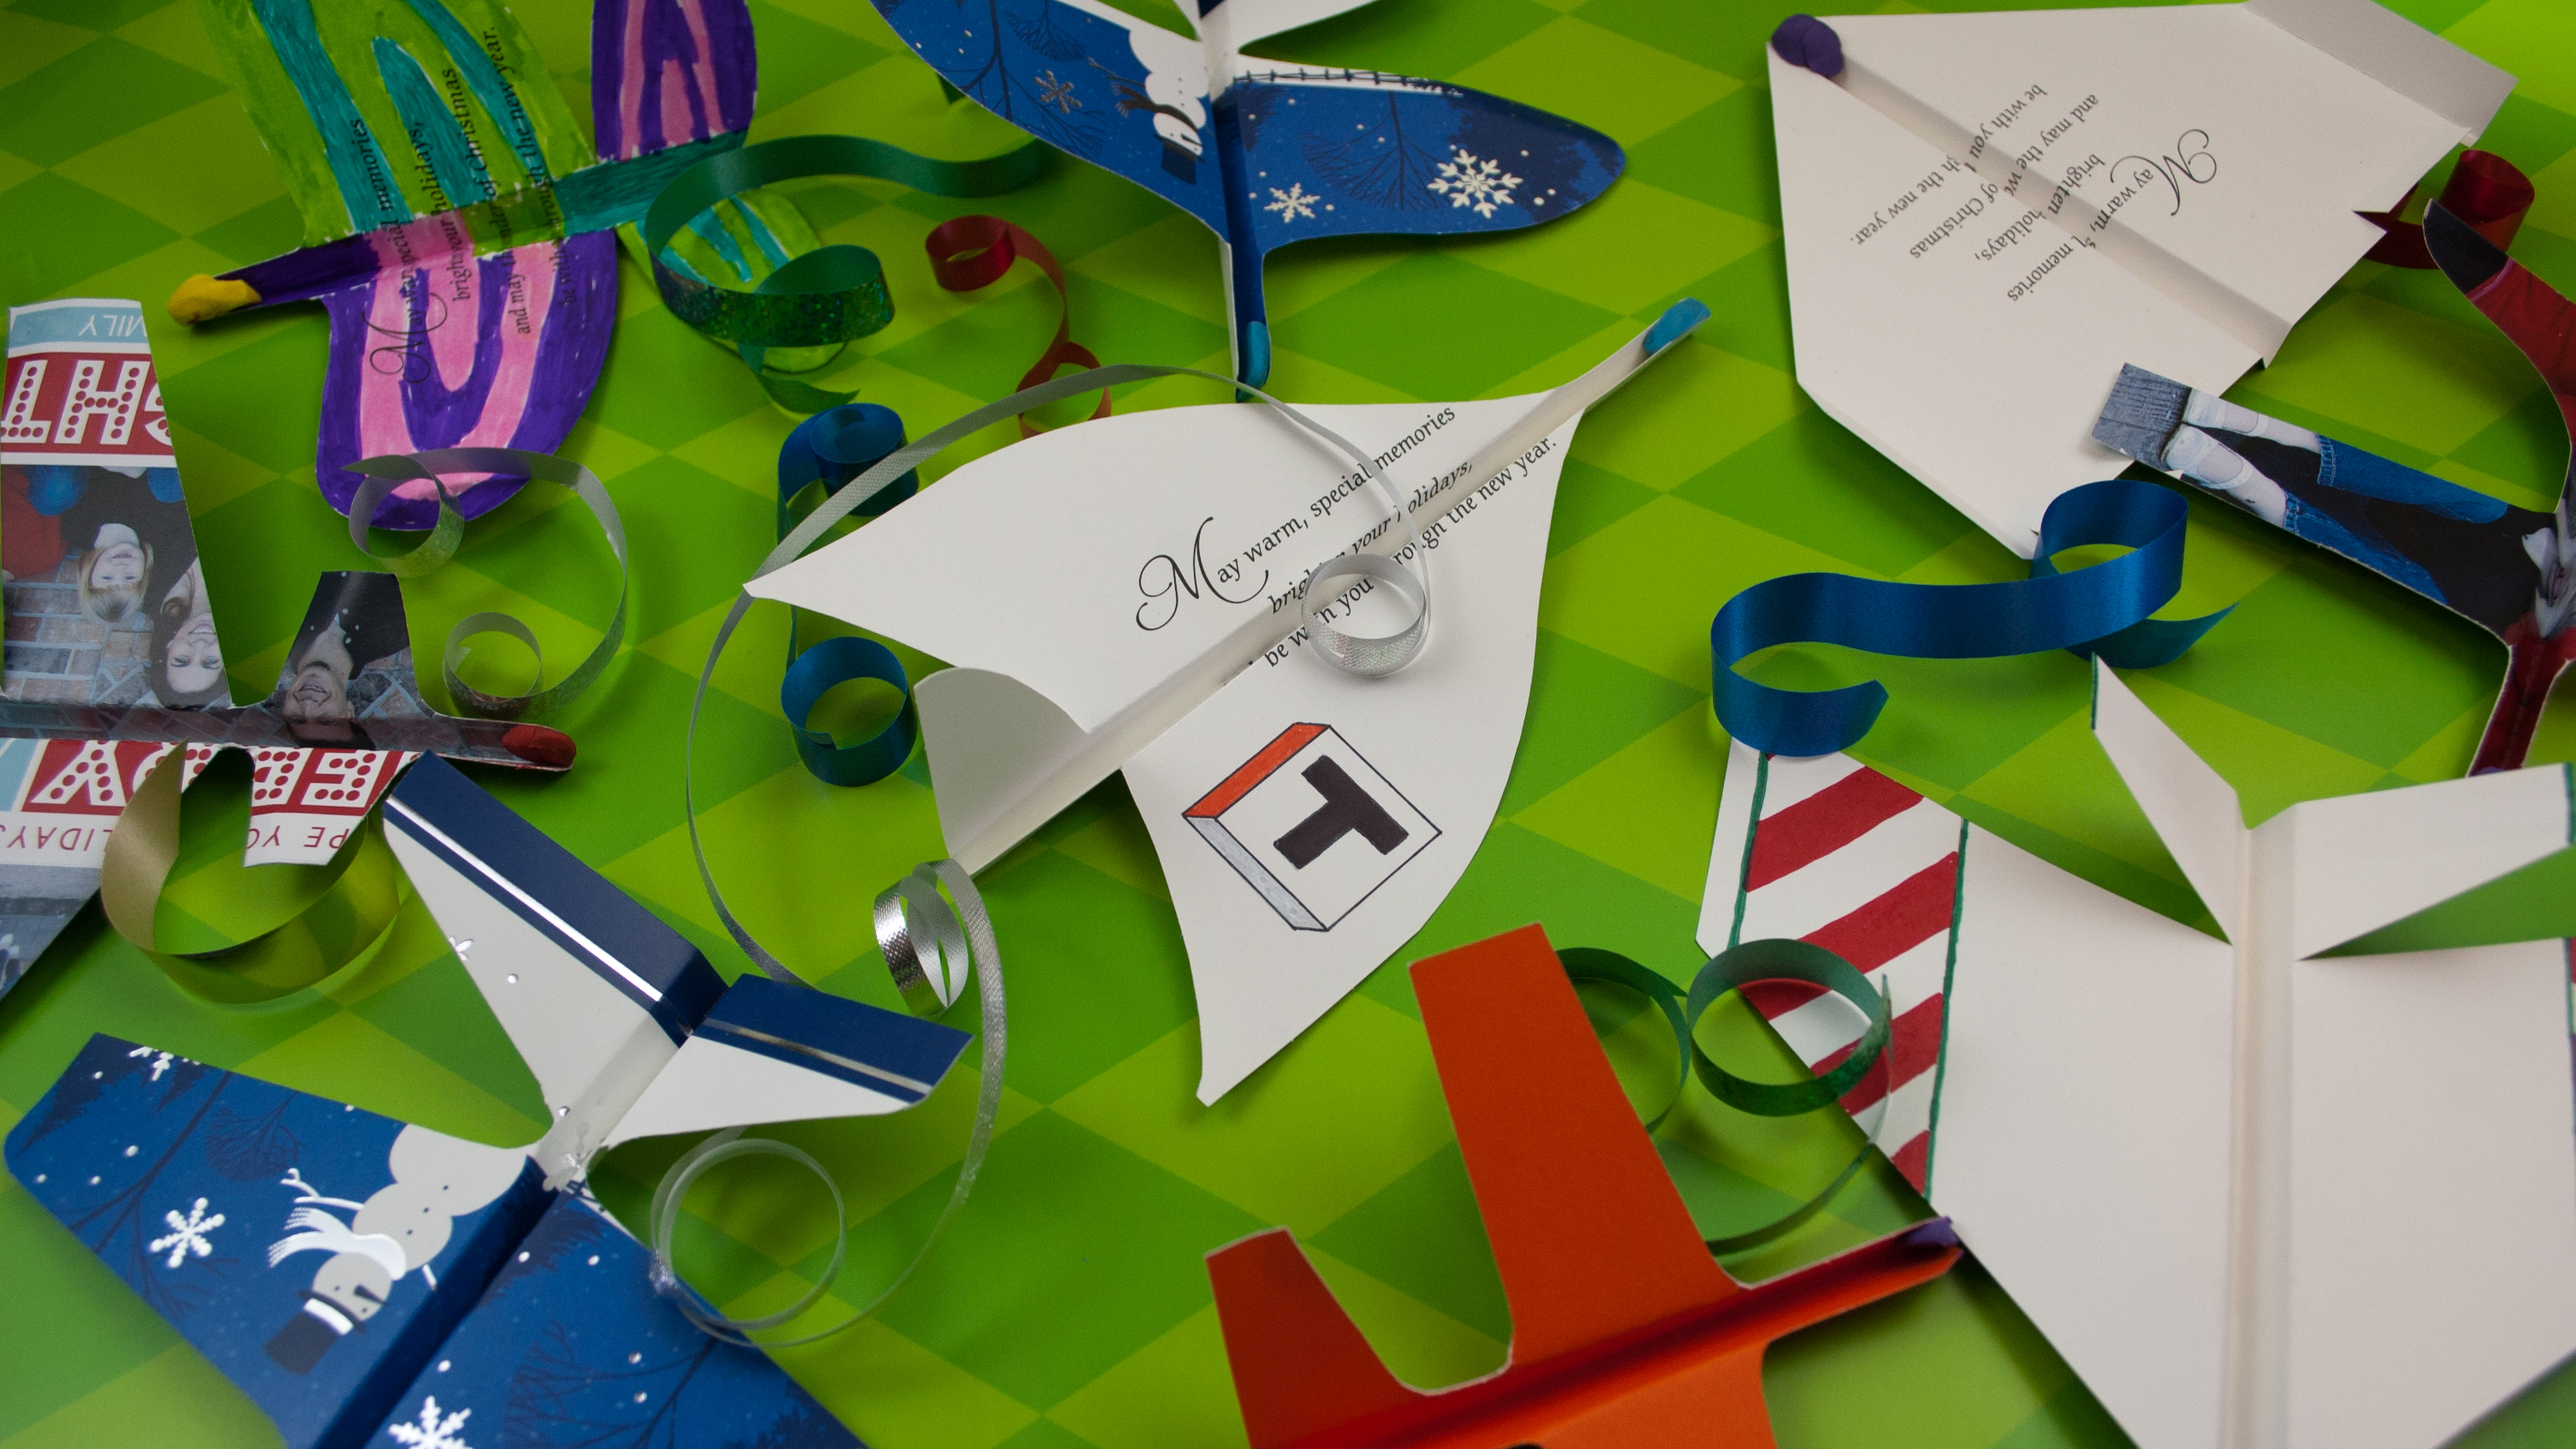 How To Make Airplanes from Christmas Cards - Tested